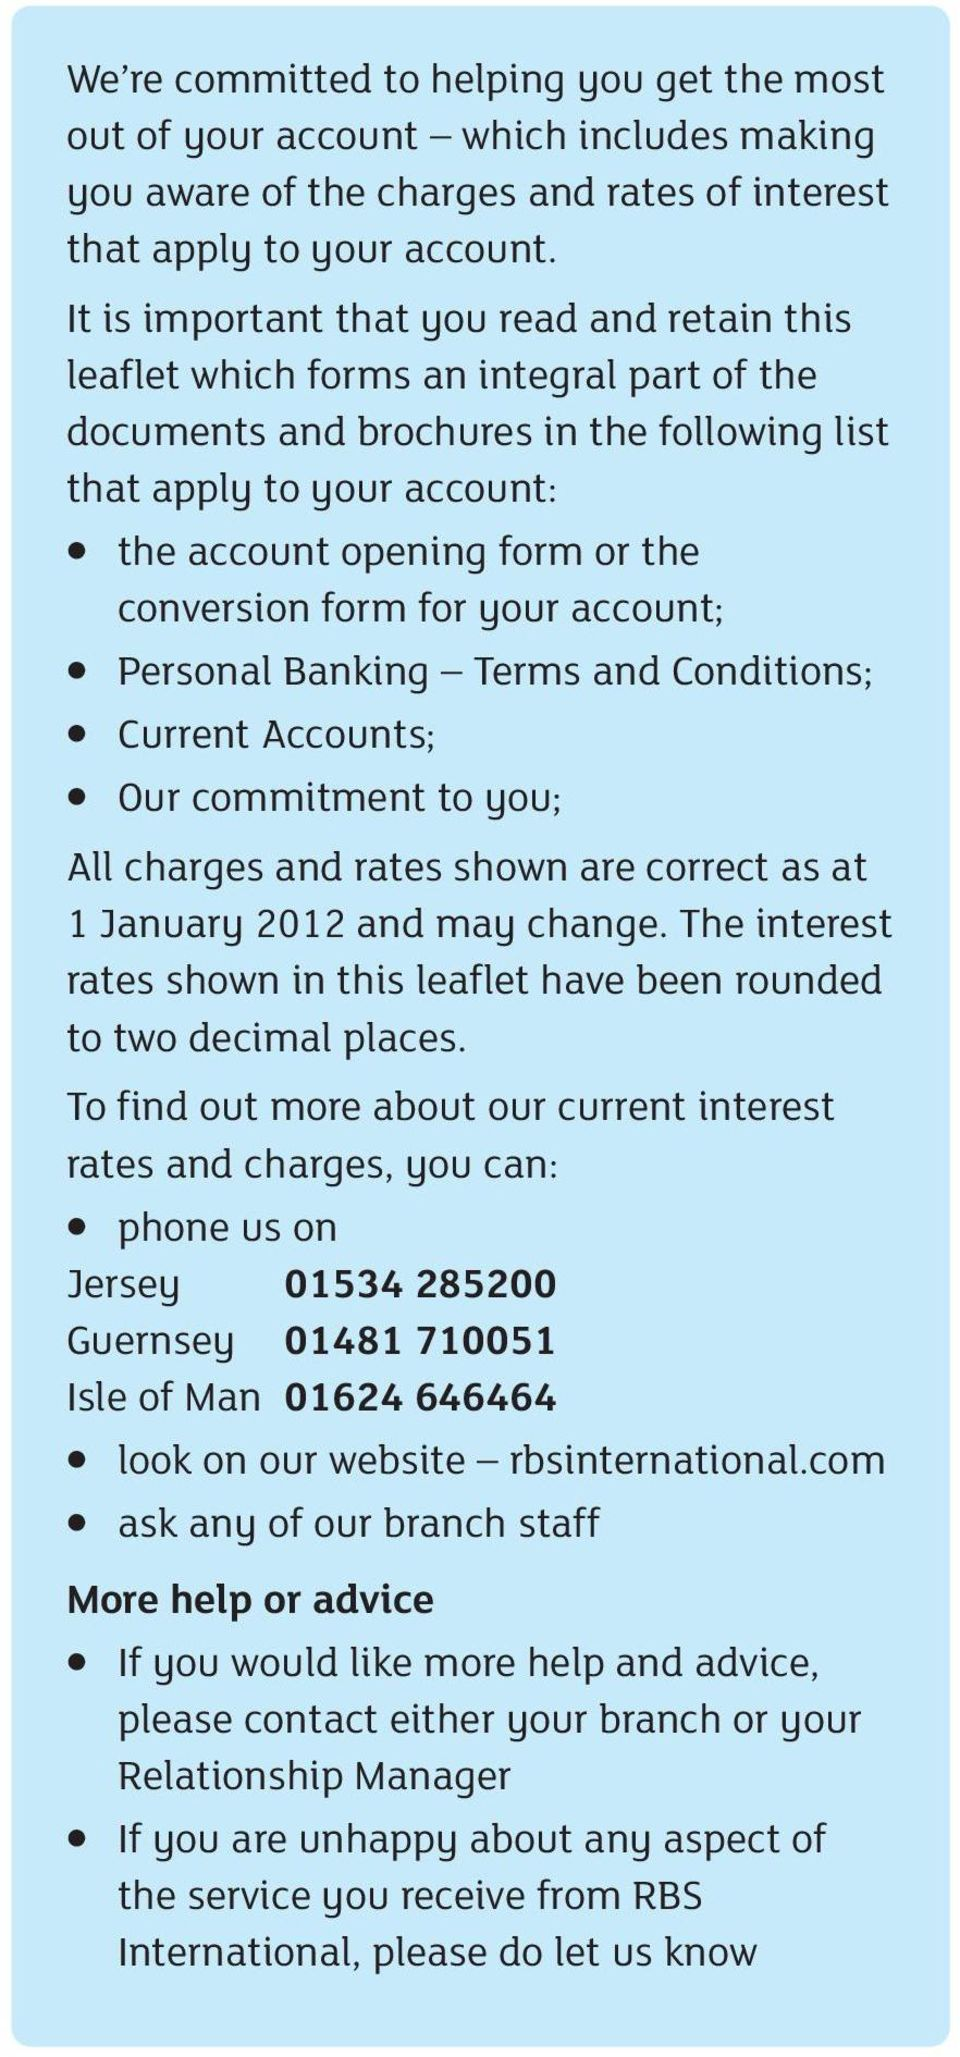 conversion form for your account; Personal Banking Terms and Conditions; Current Accounts; Our commitment to you; All charges and rates shown are correct as at 1 January 2012 and may change.